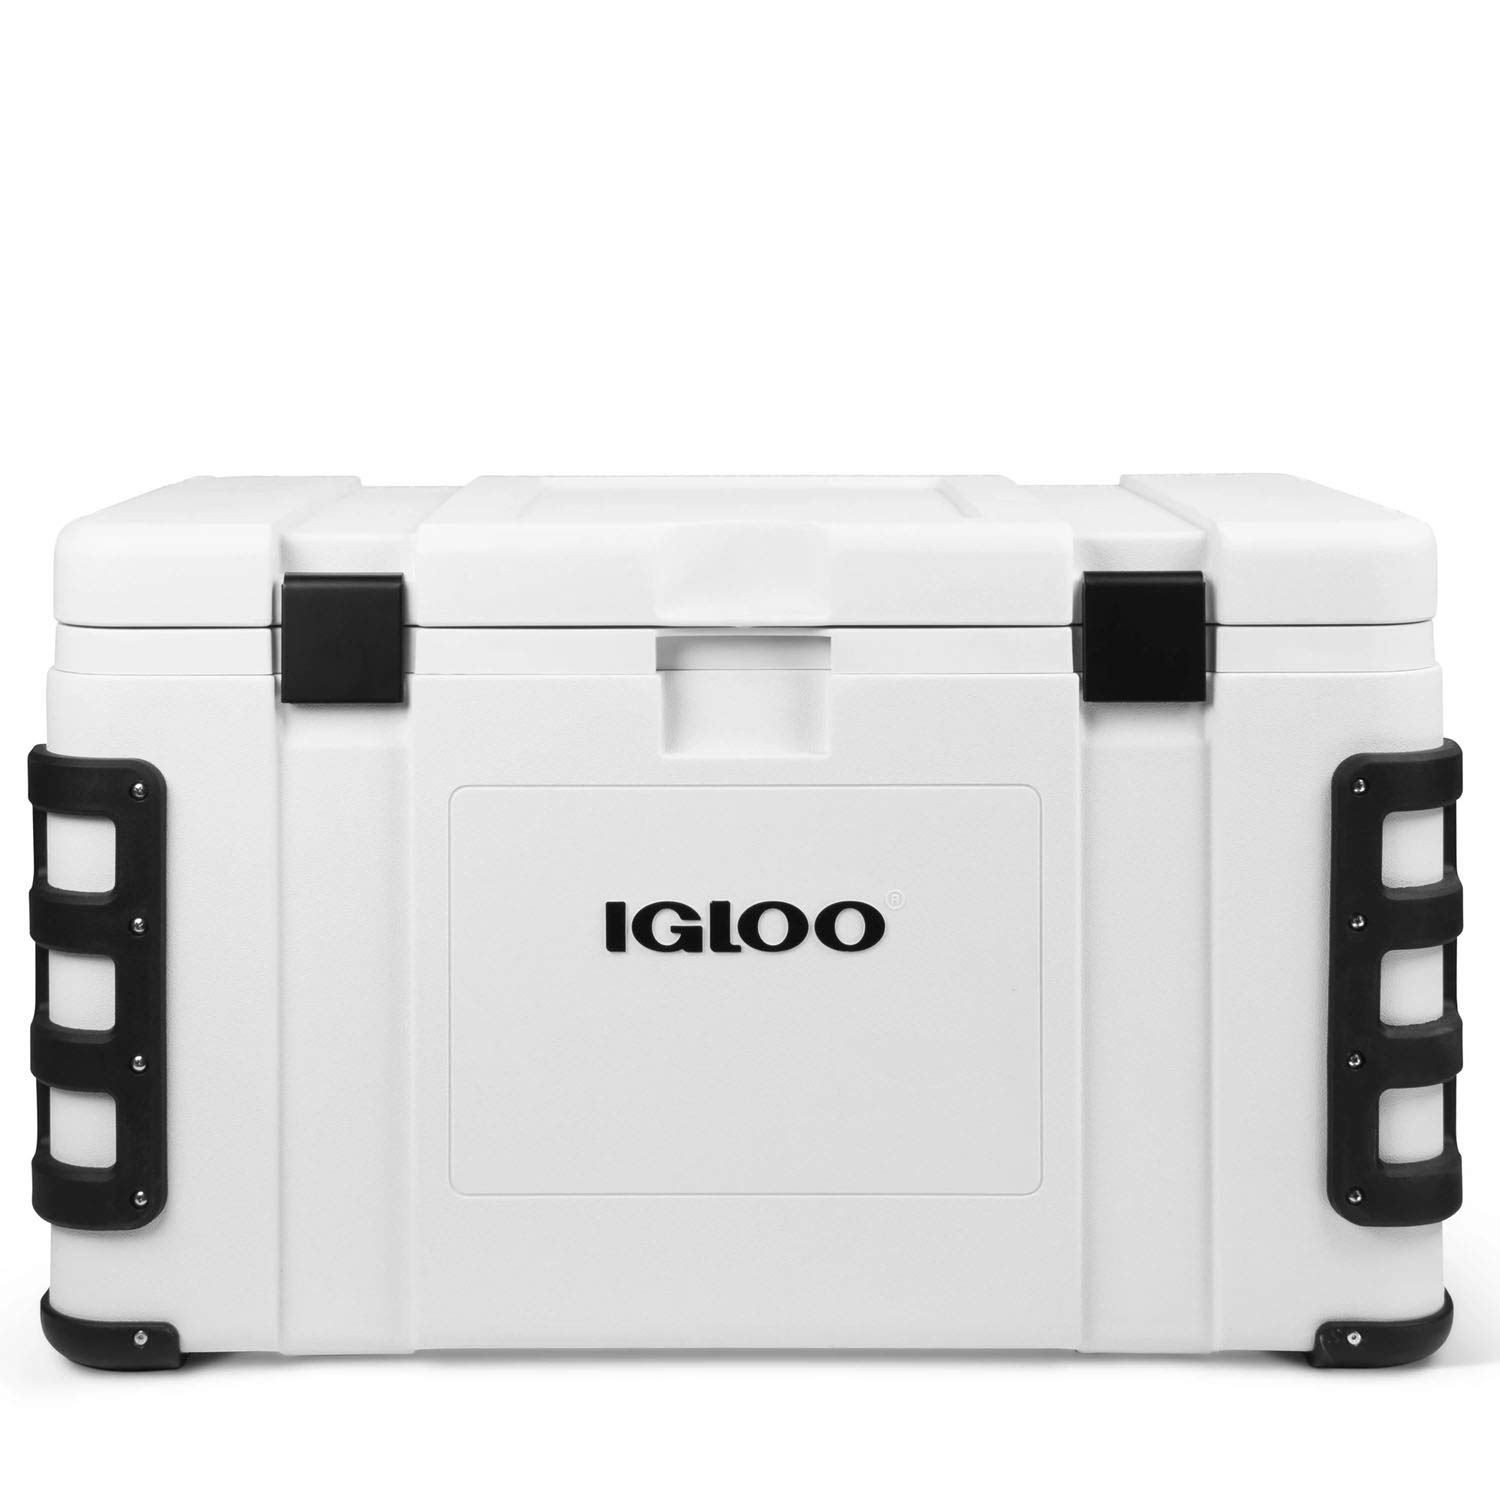 Igloo Leeward Cooler with Cutting Board, Fish Ruler, and Tie-Down Points – Marine-Grade Ice Chest – White 124 Quart